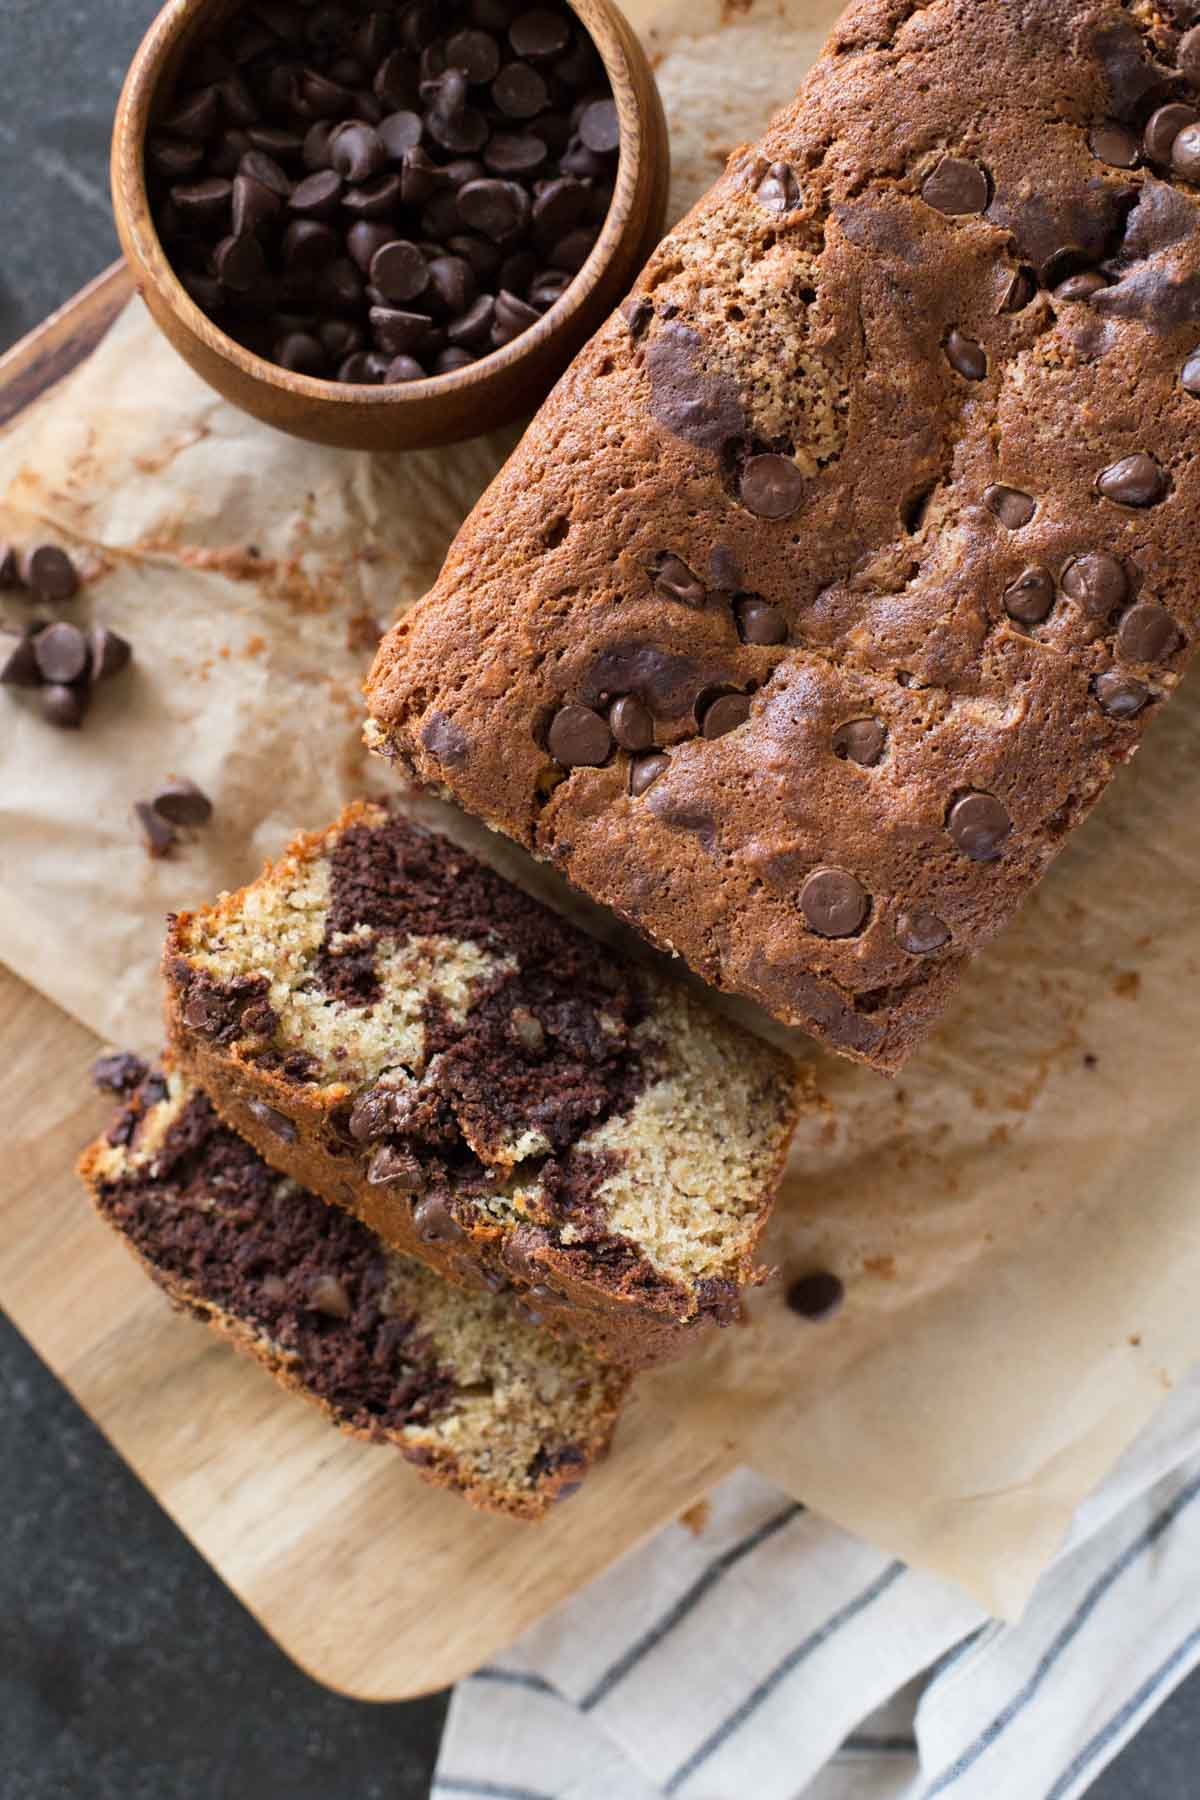 Chocolate and banana are so delicious together, and the texture of ...